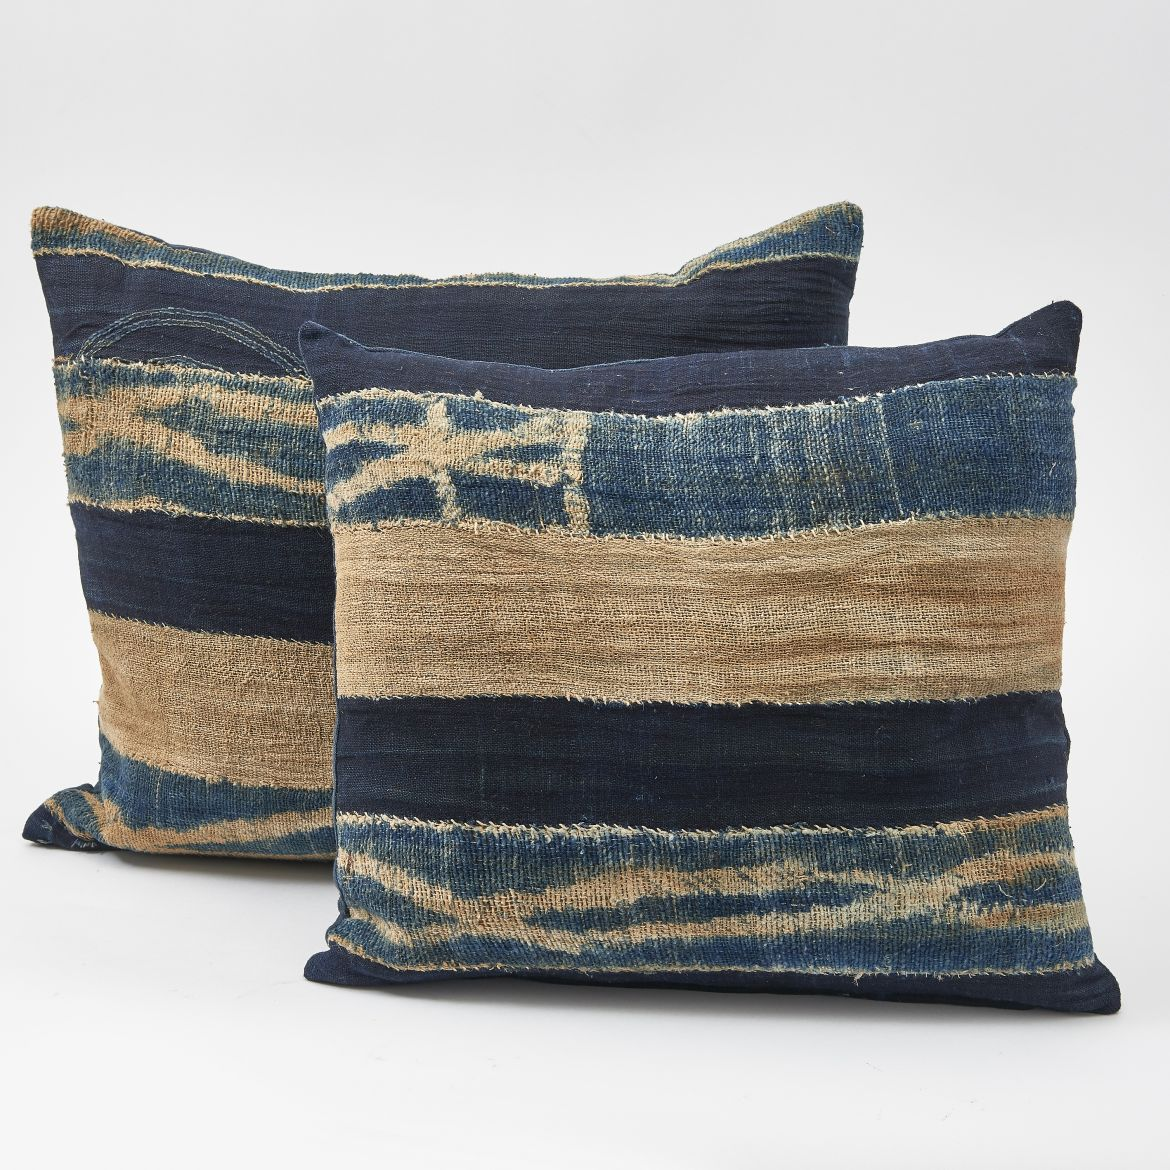 African Textile Cushions